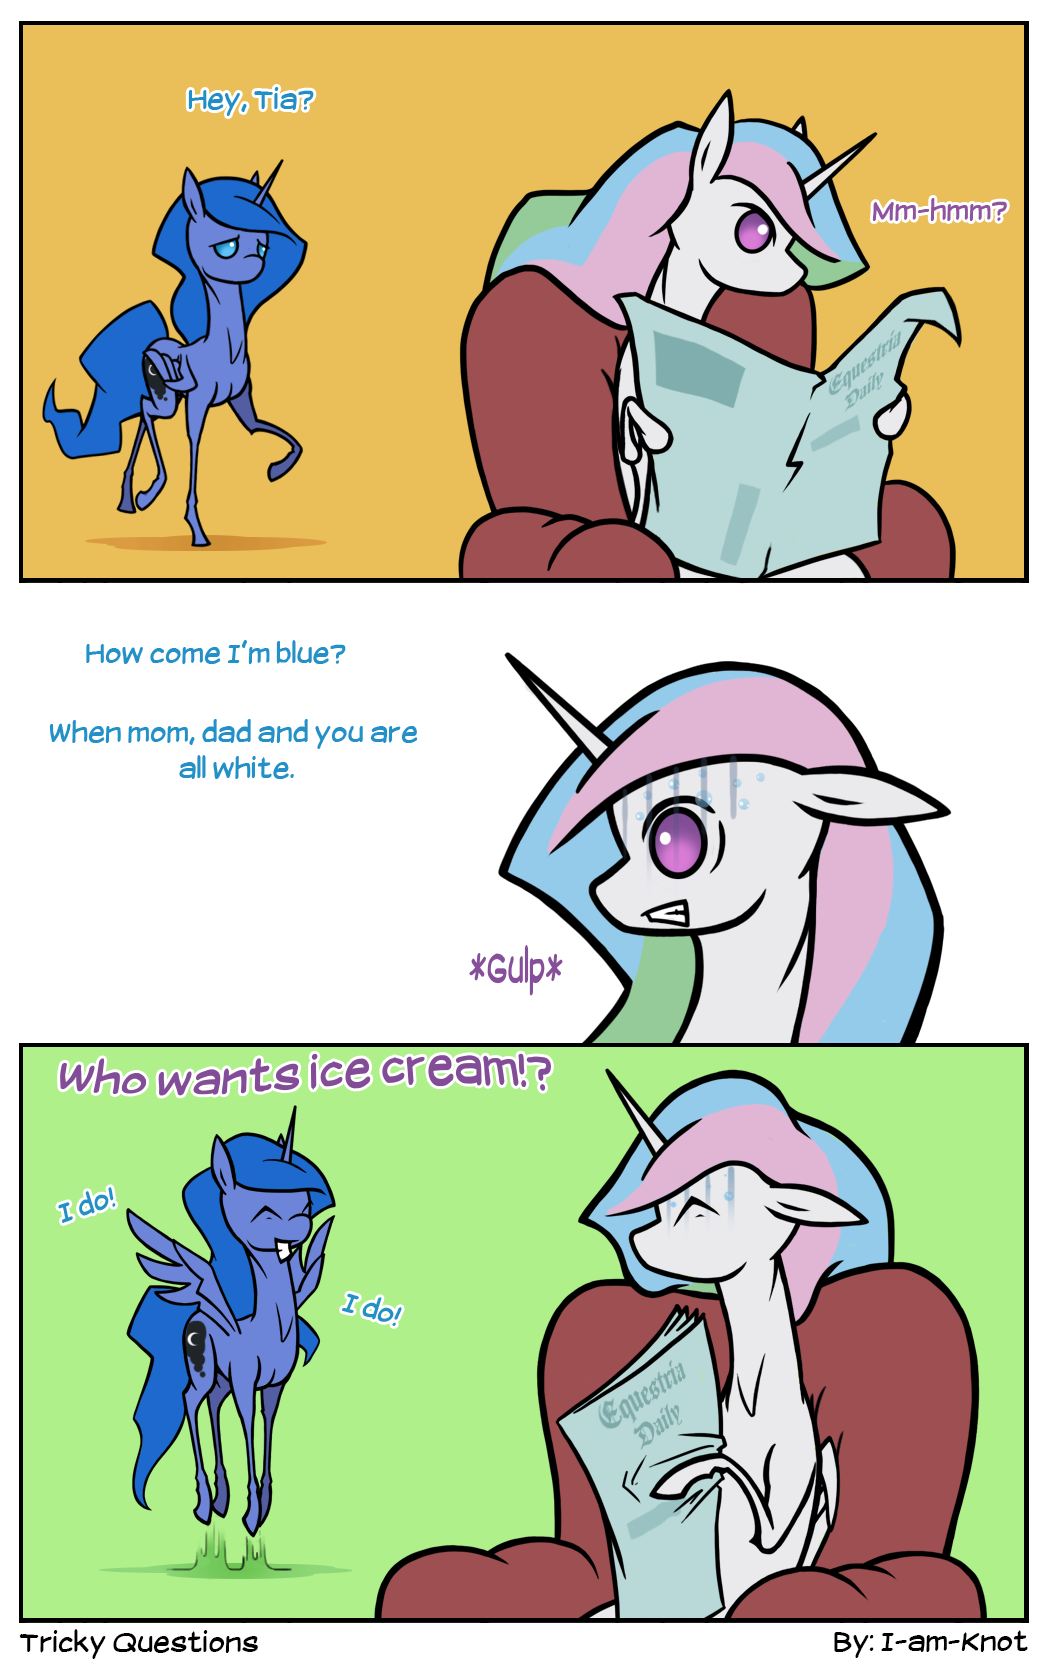 Tricky Questions by I-am-knot